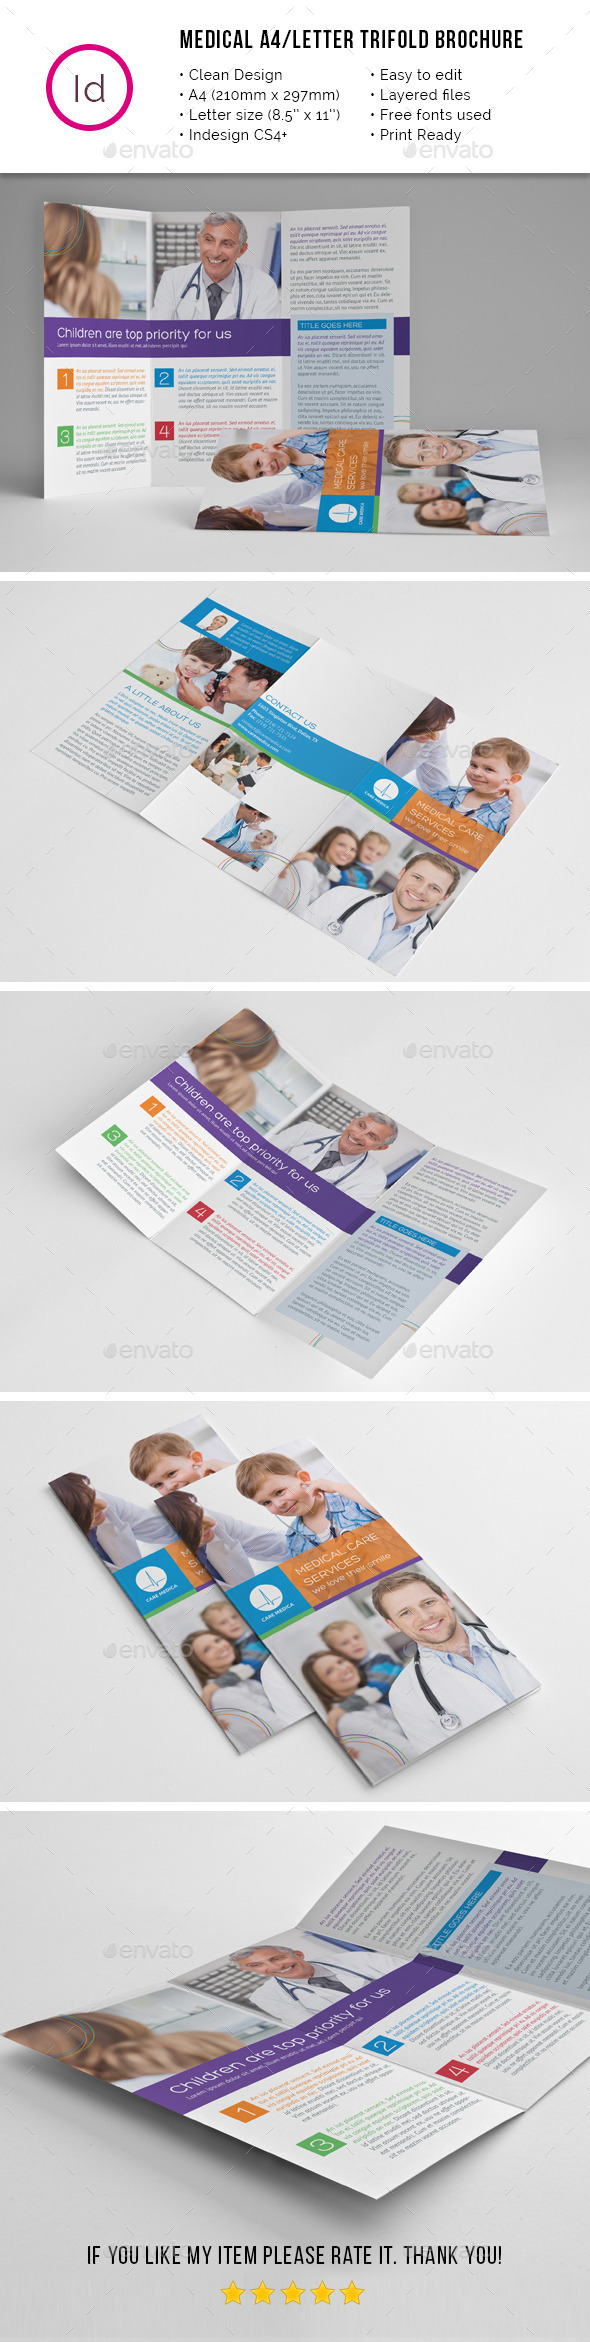 Children Medical A4 / Letter Trifold Brochure - Corporate Brochures